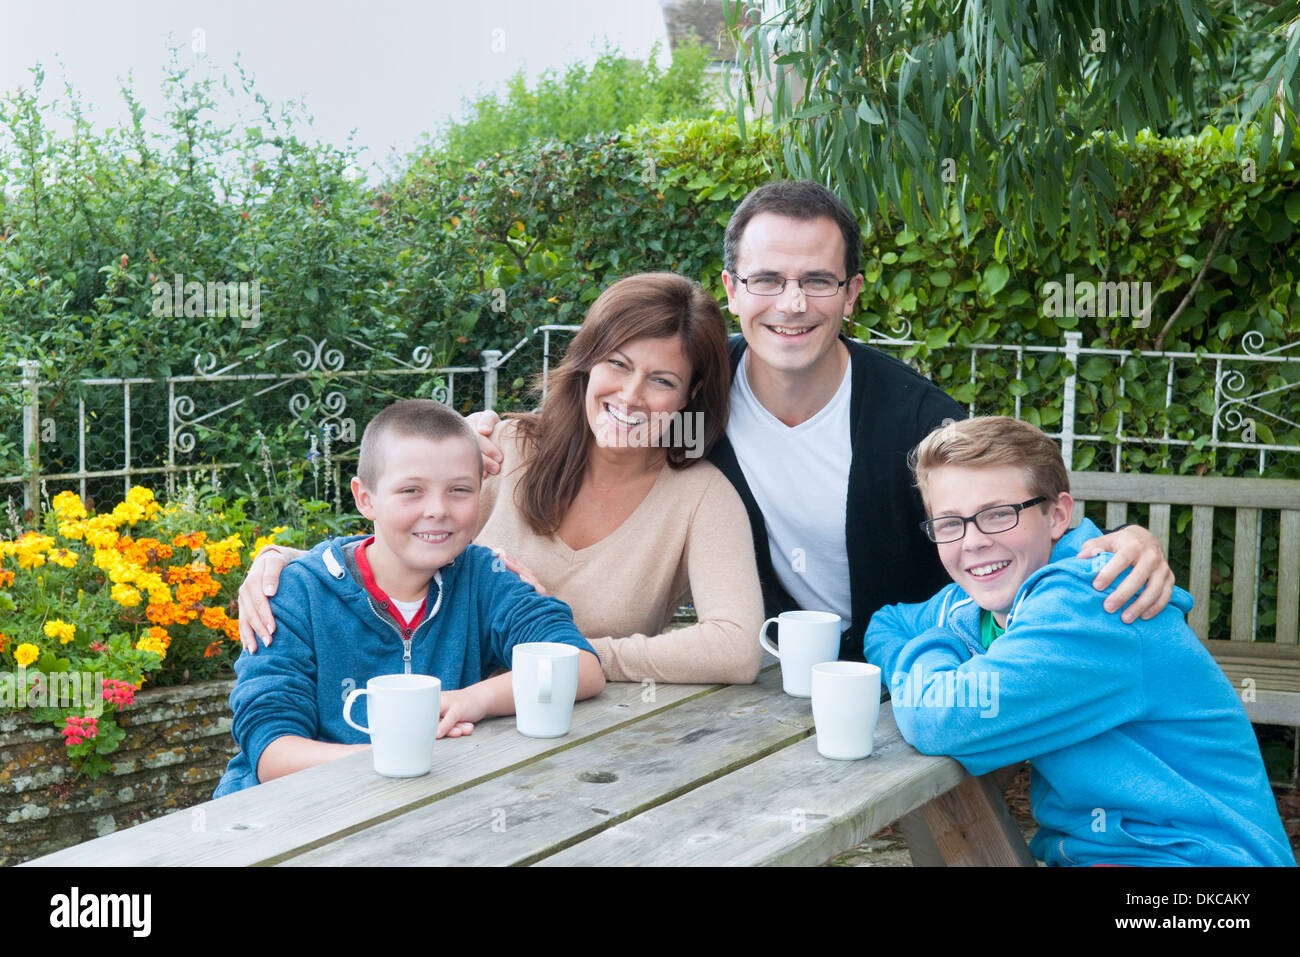 Family portrait at picnic bench - Stock Image